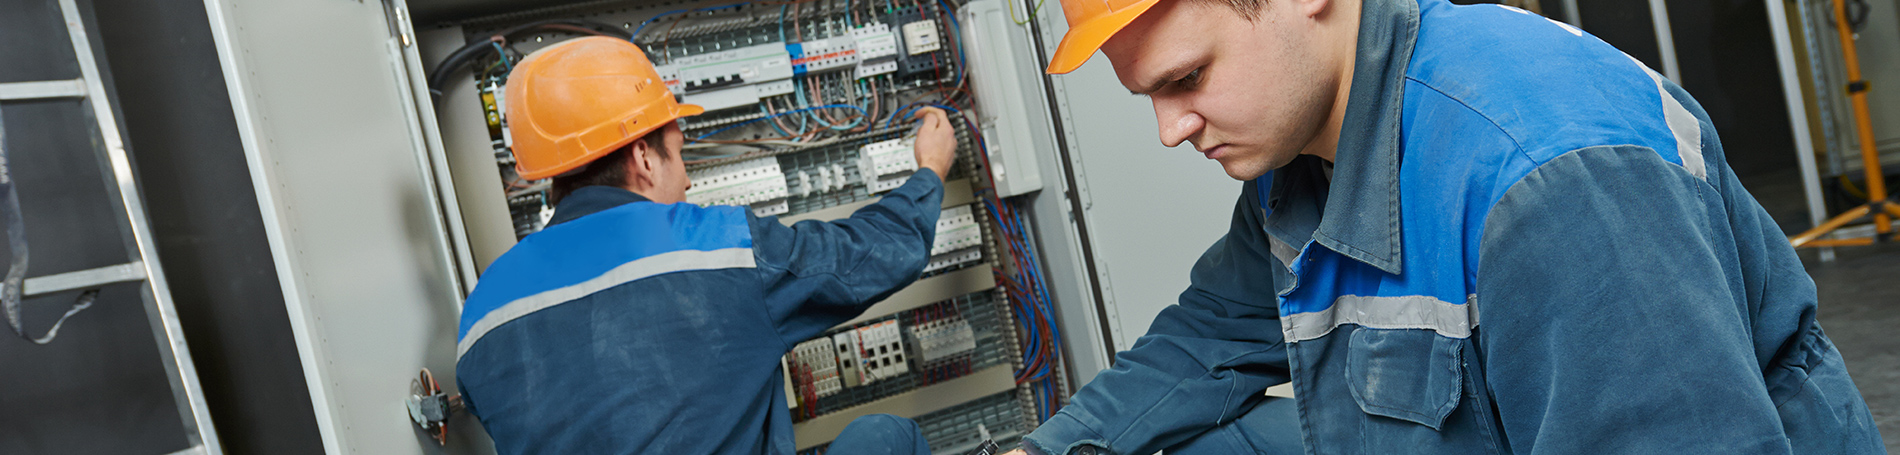 Installations, RDM, Electrical Installations, Control Systems